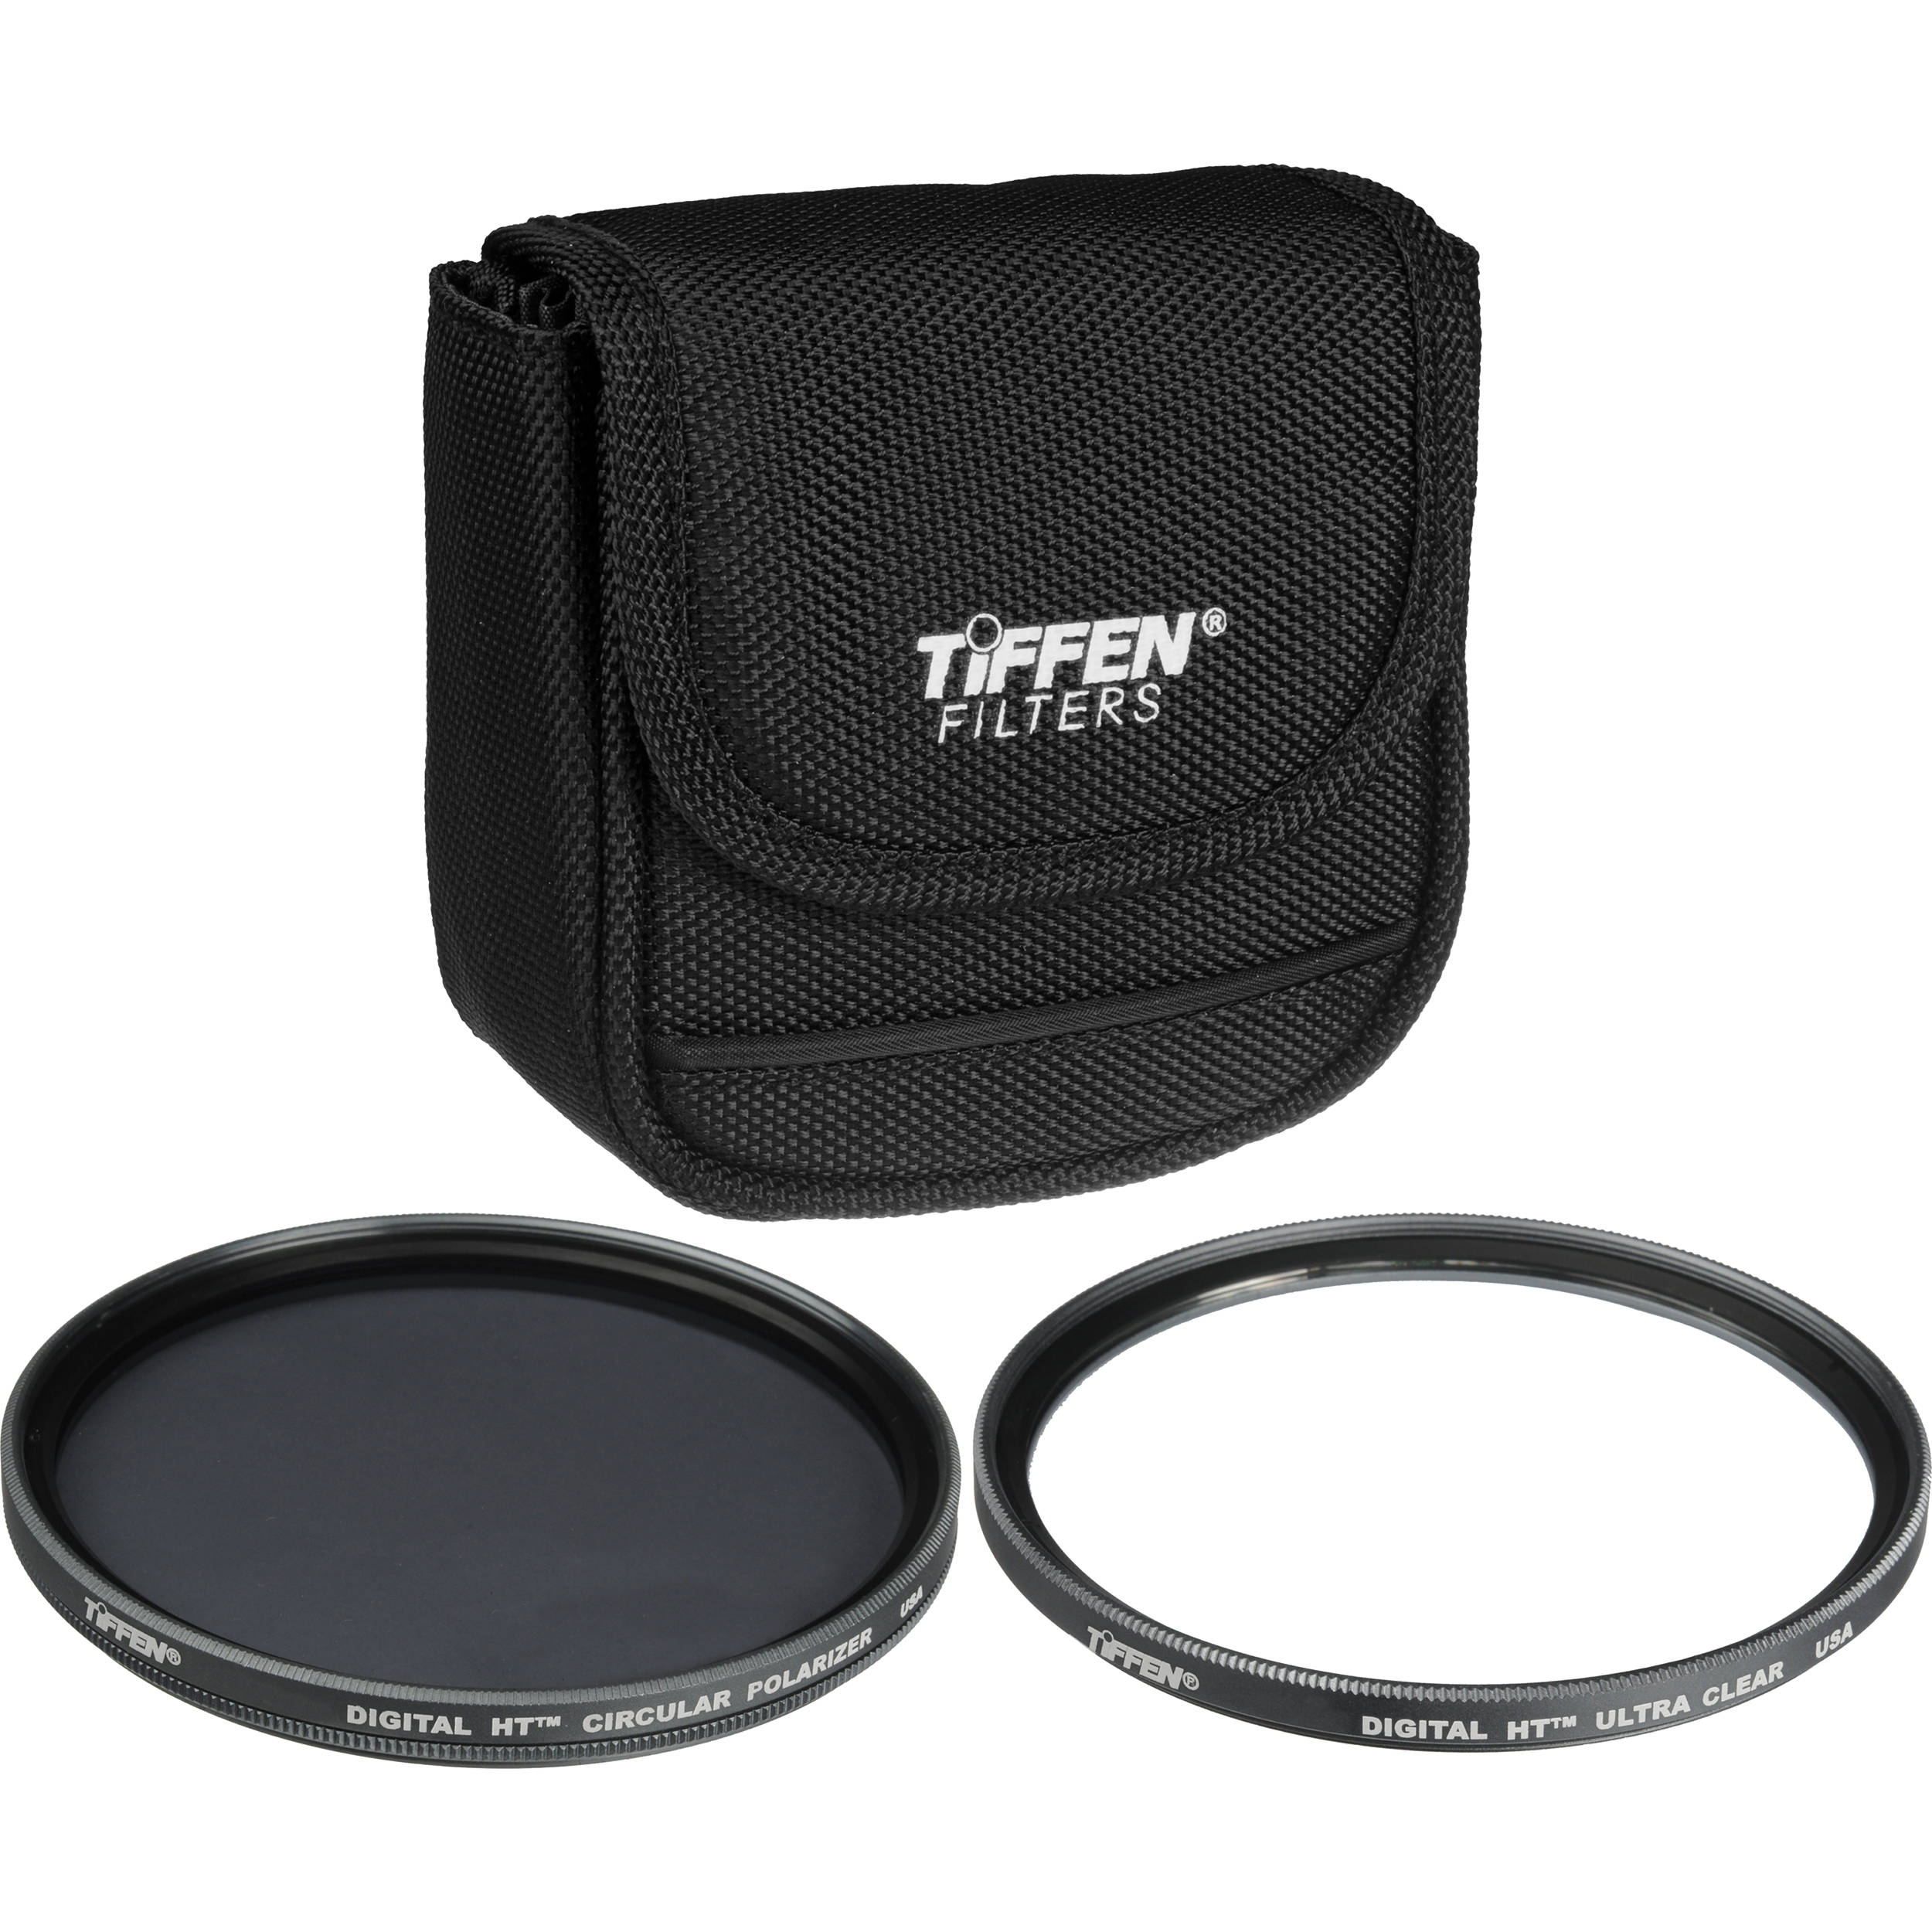 digital filter 10+ items  filter kits from adorama - same day shipping 'til 8pm the best combination of quality services, vast selection, knowledgeable staff and competitive pricingof filter kitsadorama - more than a camera store.